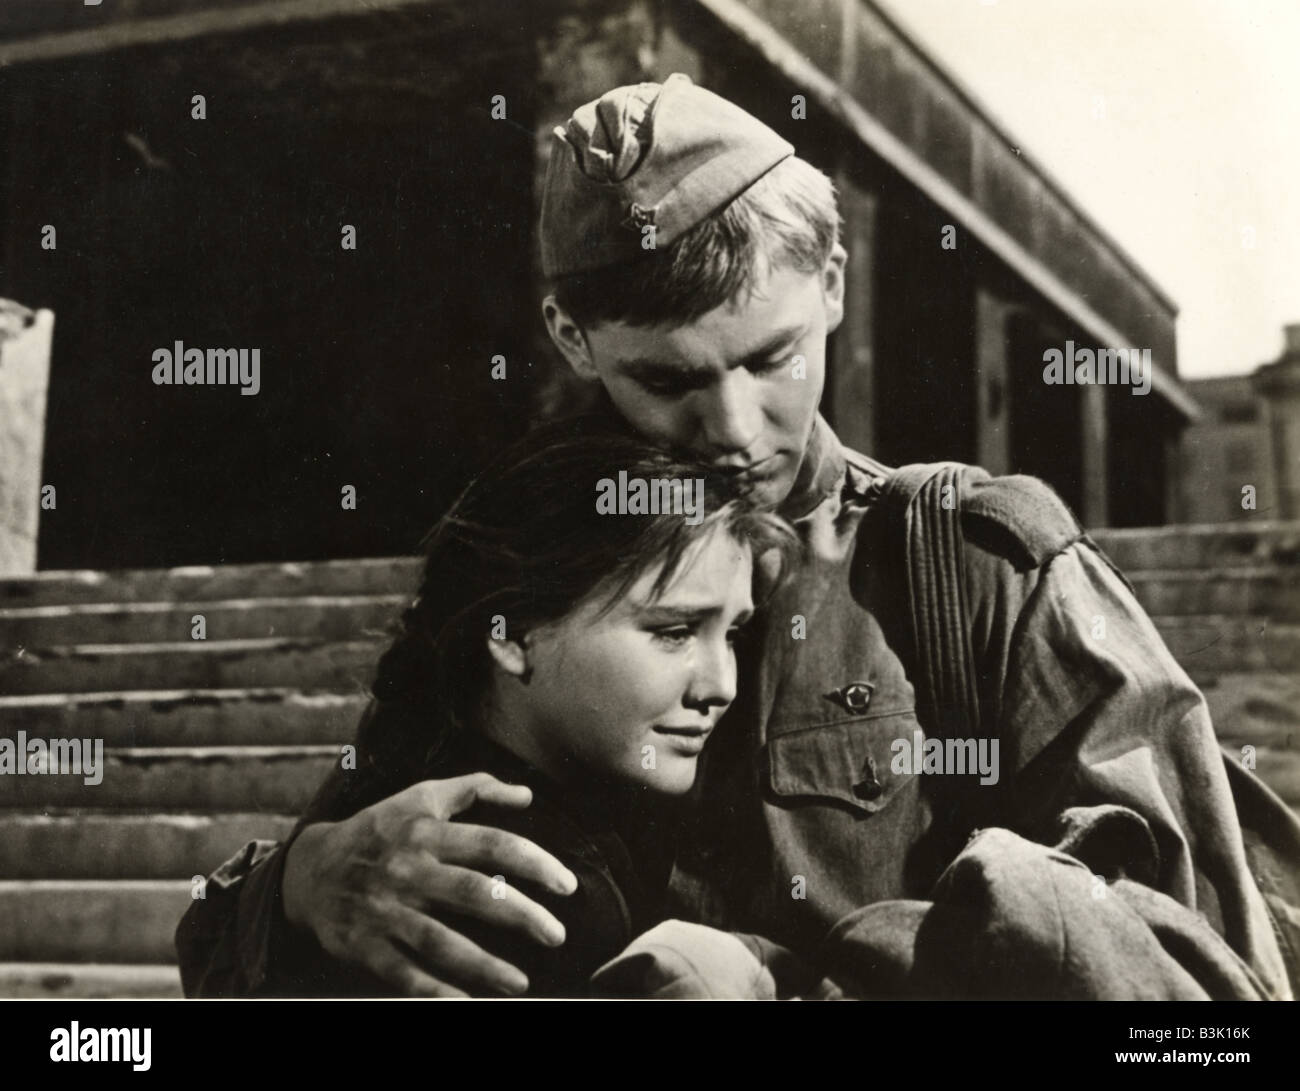 BALLAD OF A SOLDIER  1959 Mosfilm film with Vladimir Ivasherv and Sharma Prokhorenko - Stock Image